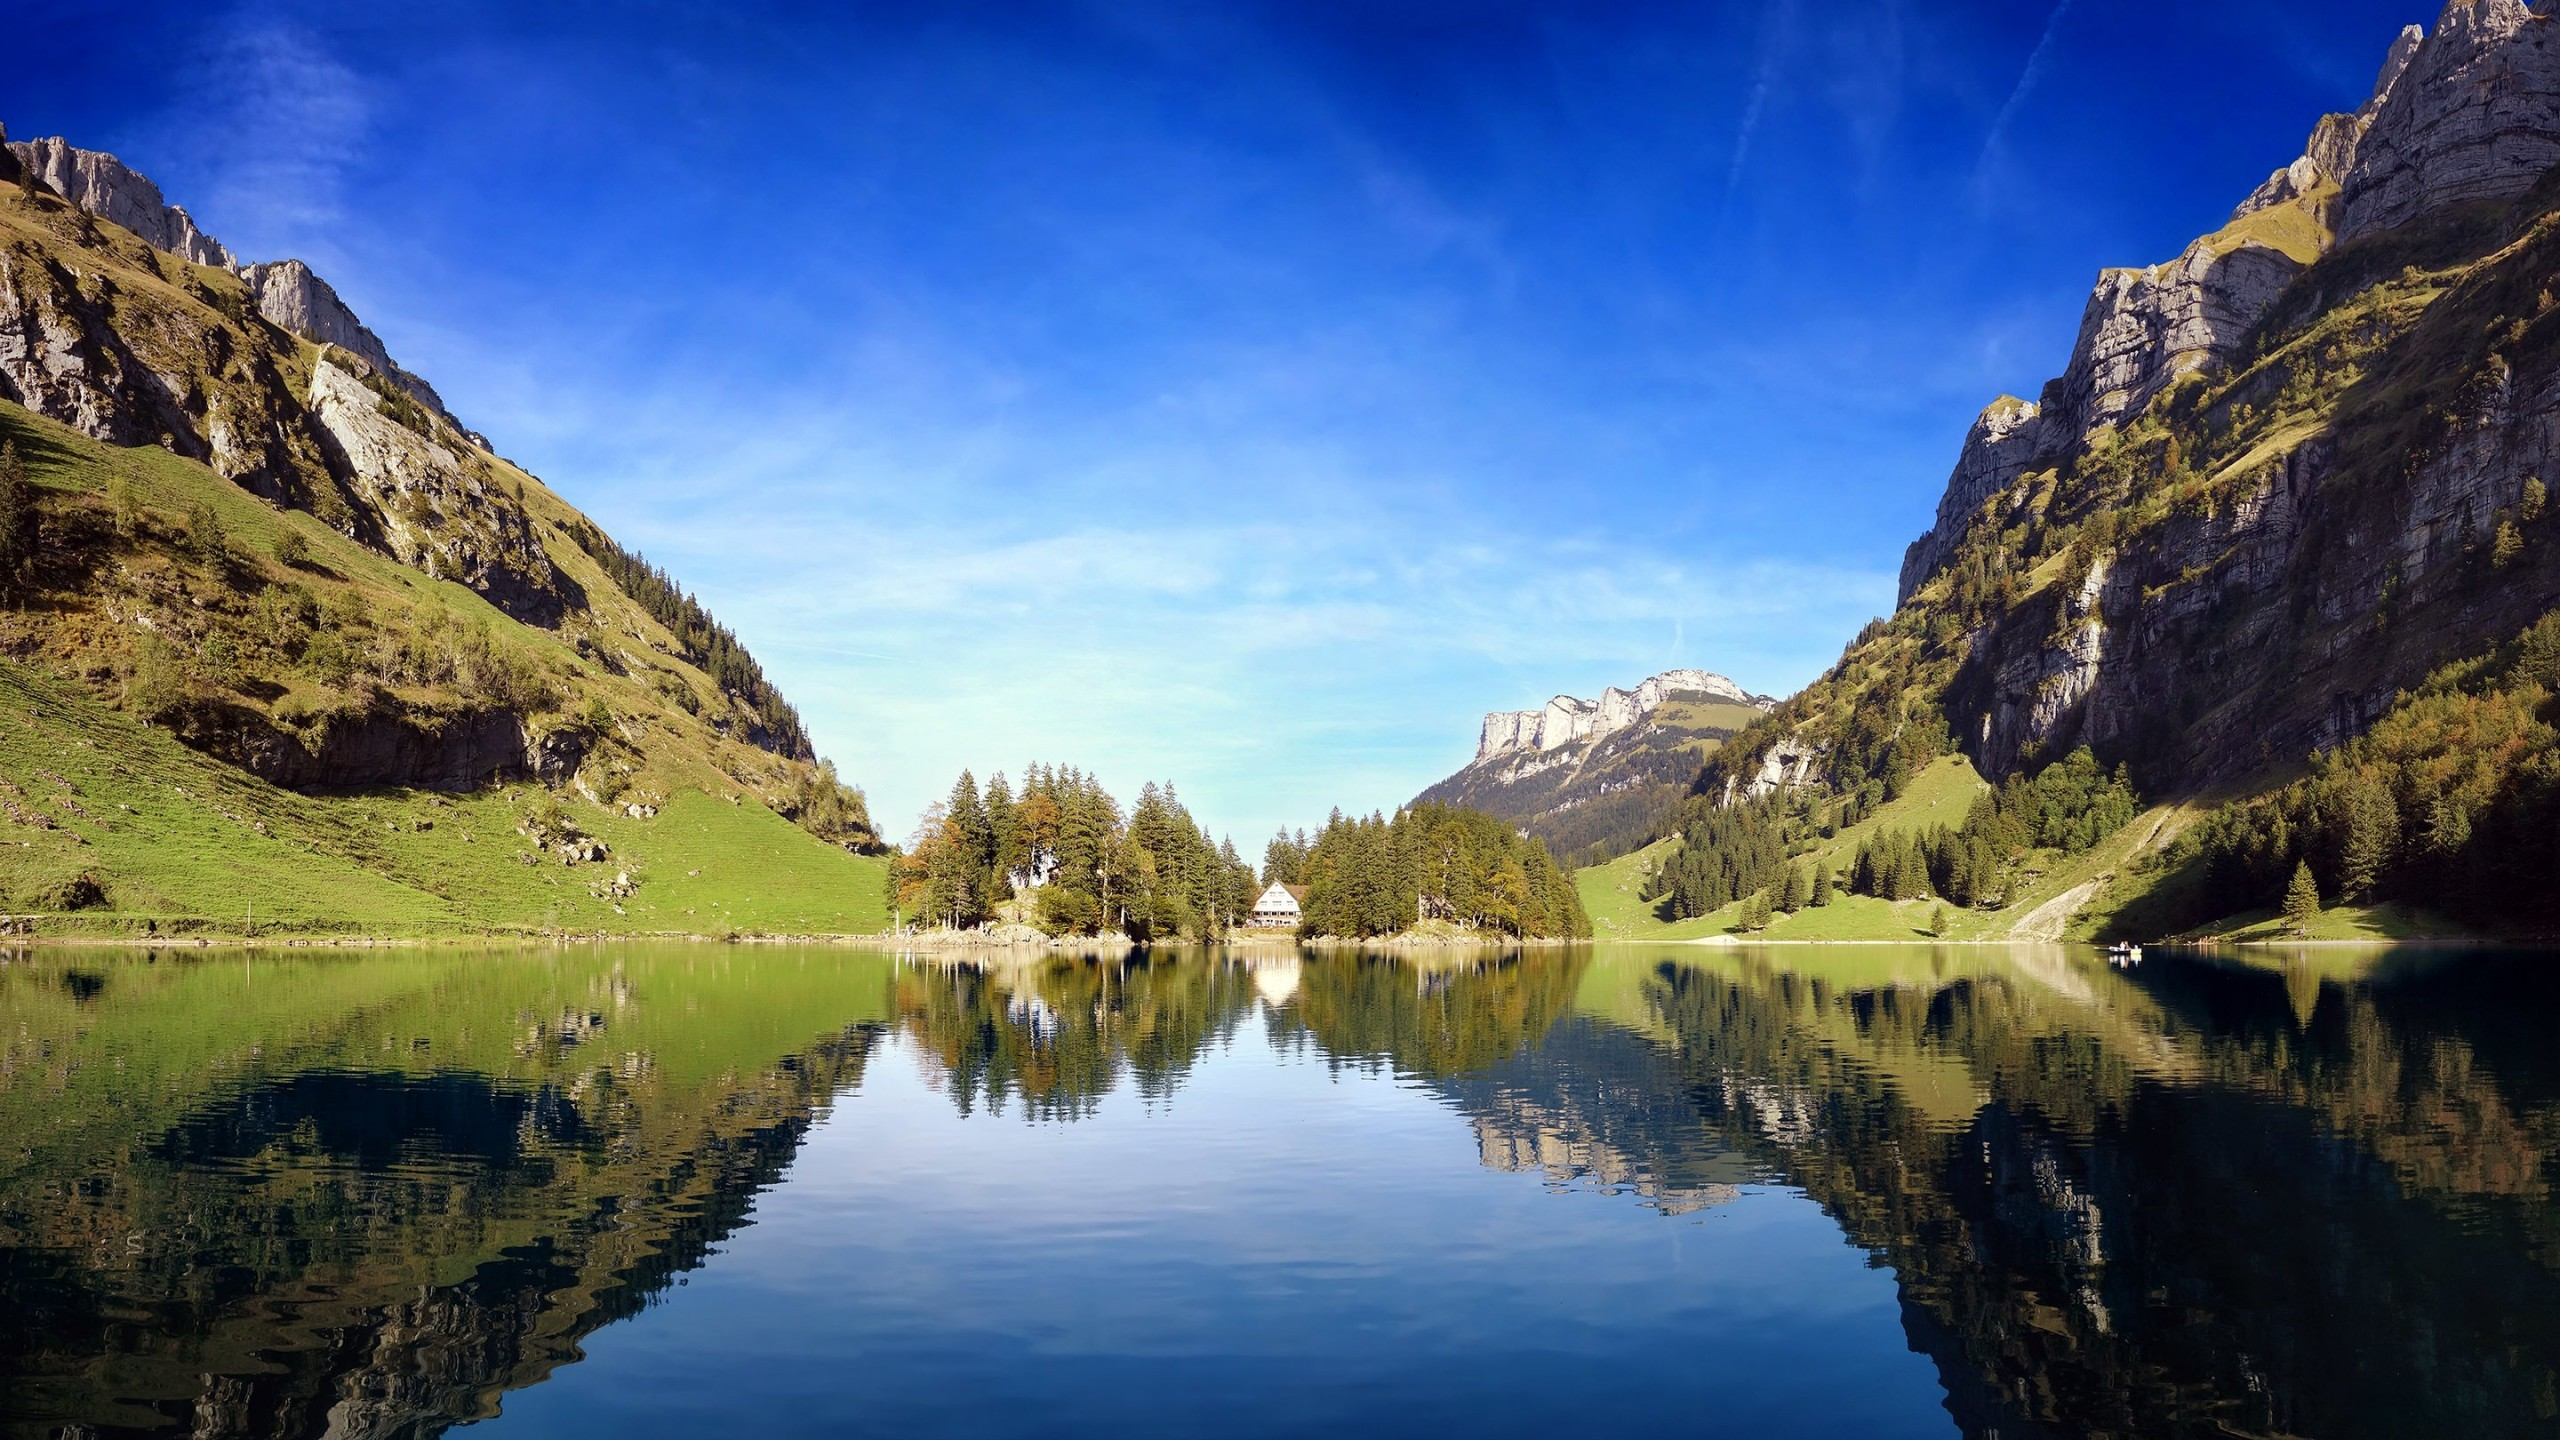 Seealpsee lake in Switzerland Wallpaper for Social Media YouTube Channel Art